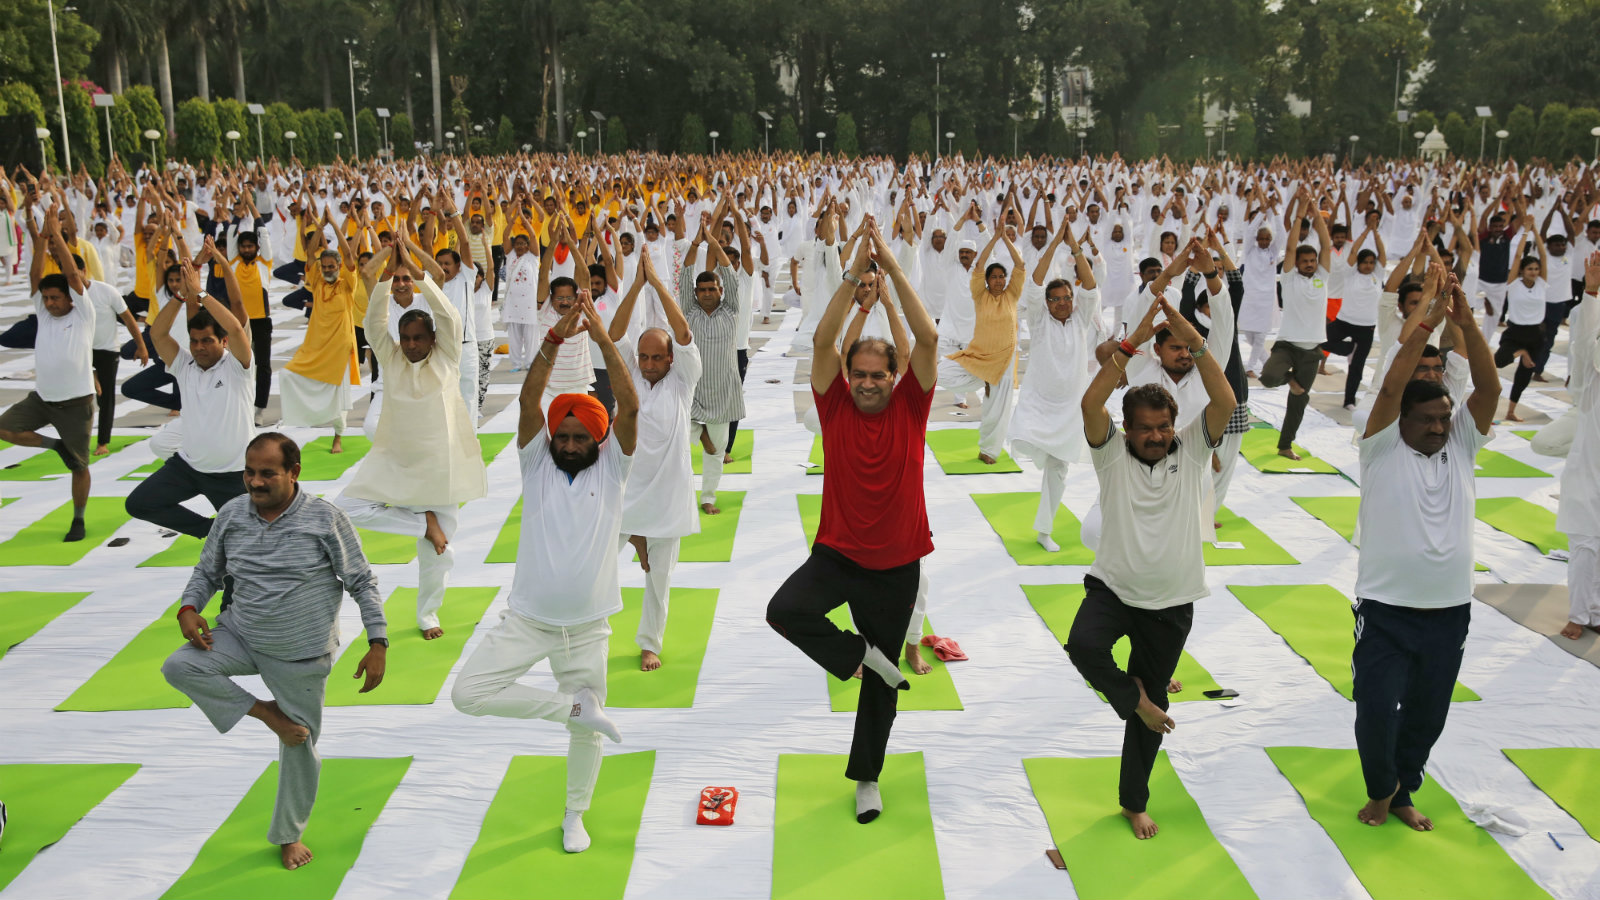 Indians perform Yoga in Lucknow, India, Wednesday, June 7, 2017. The yoga training camp was organized for the upcoming International Yoga Day, which is celebrated annually on June 21.